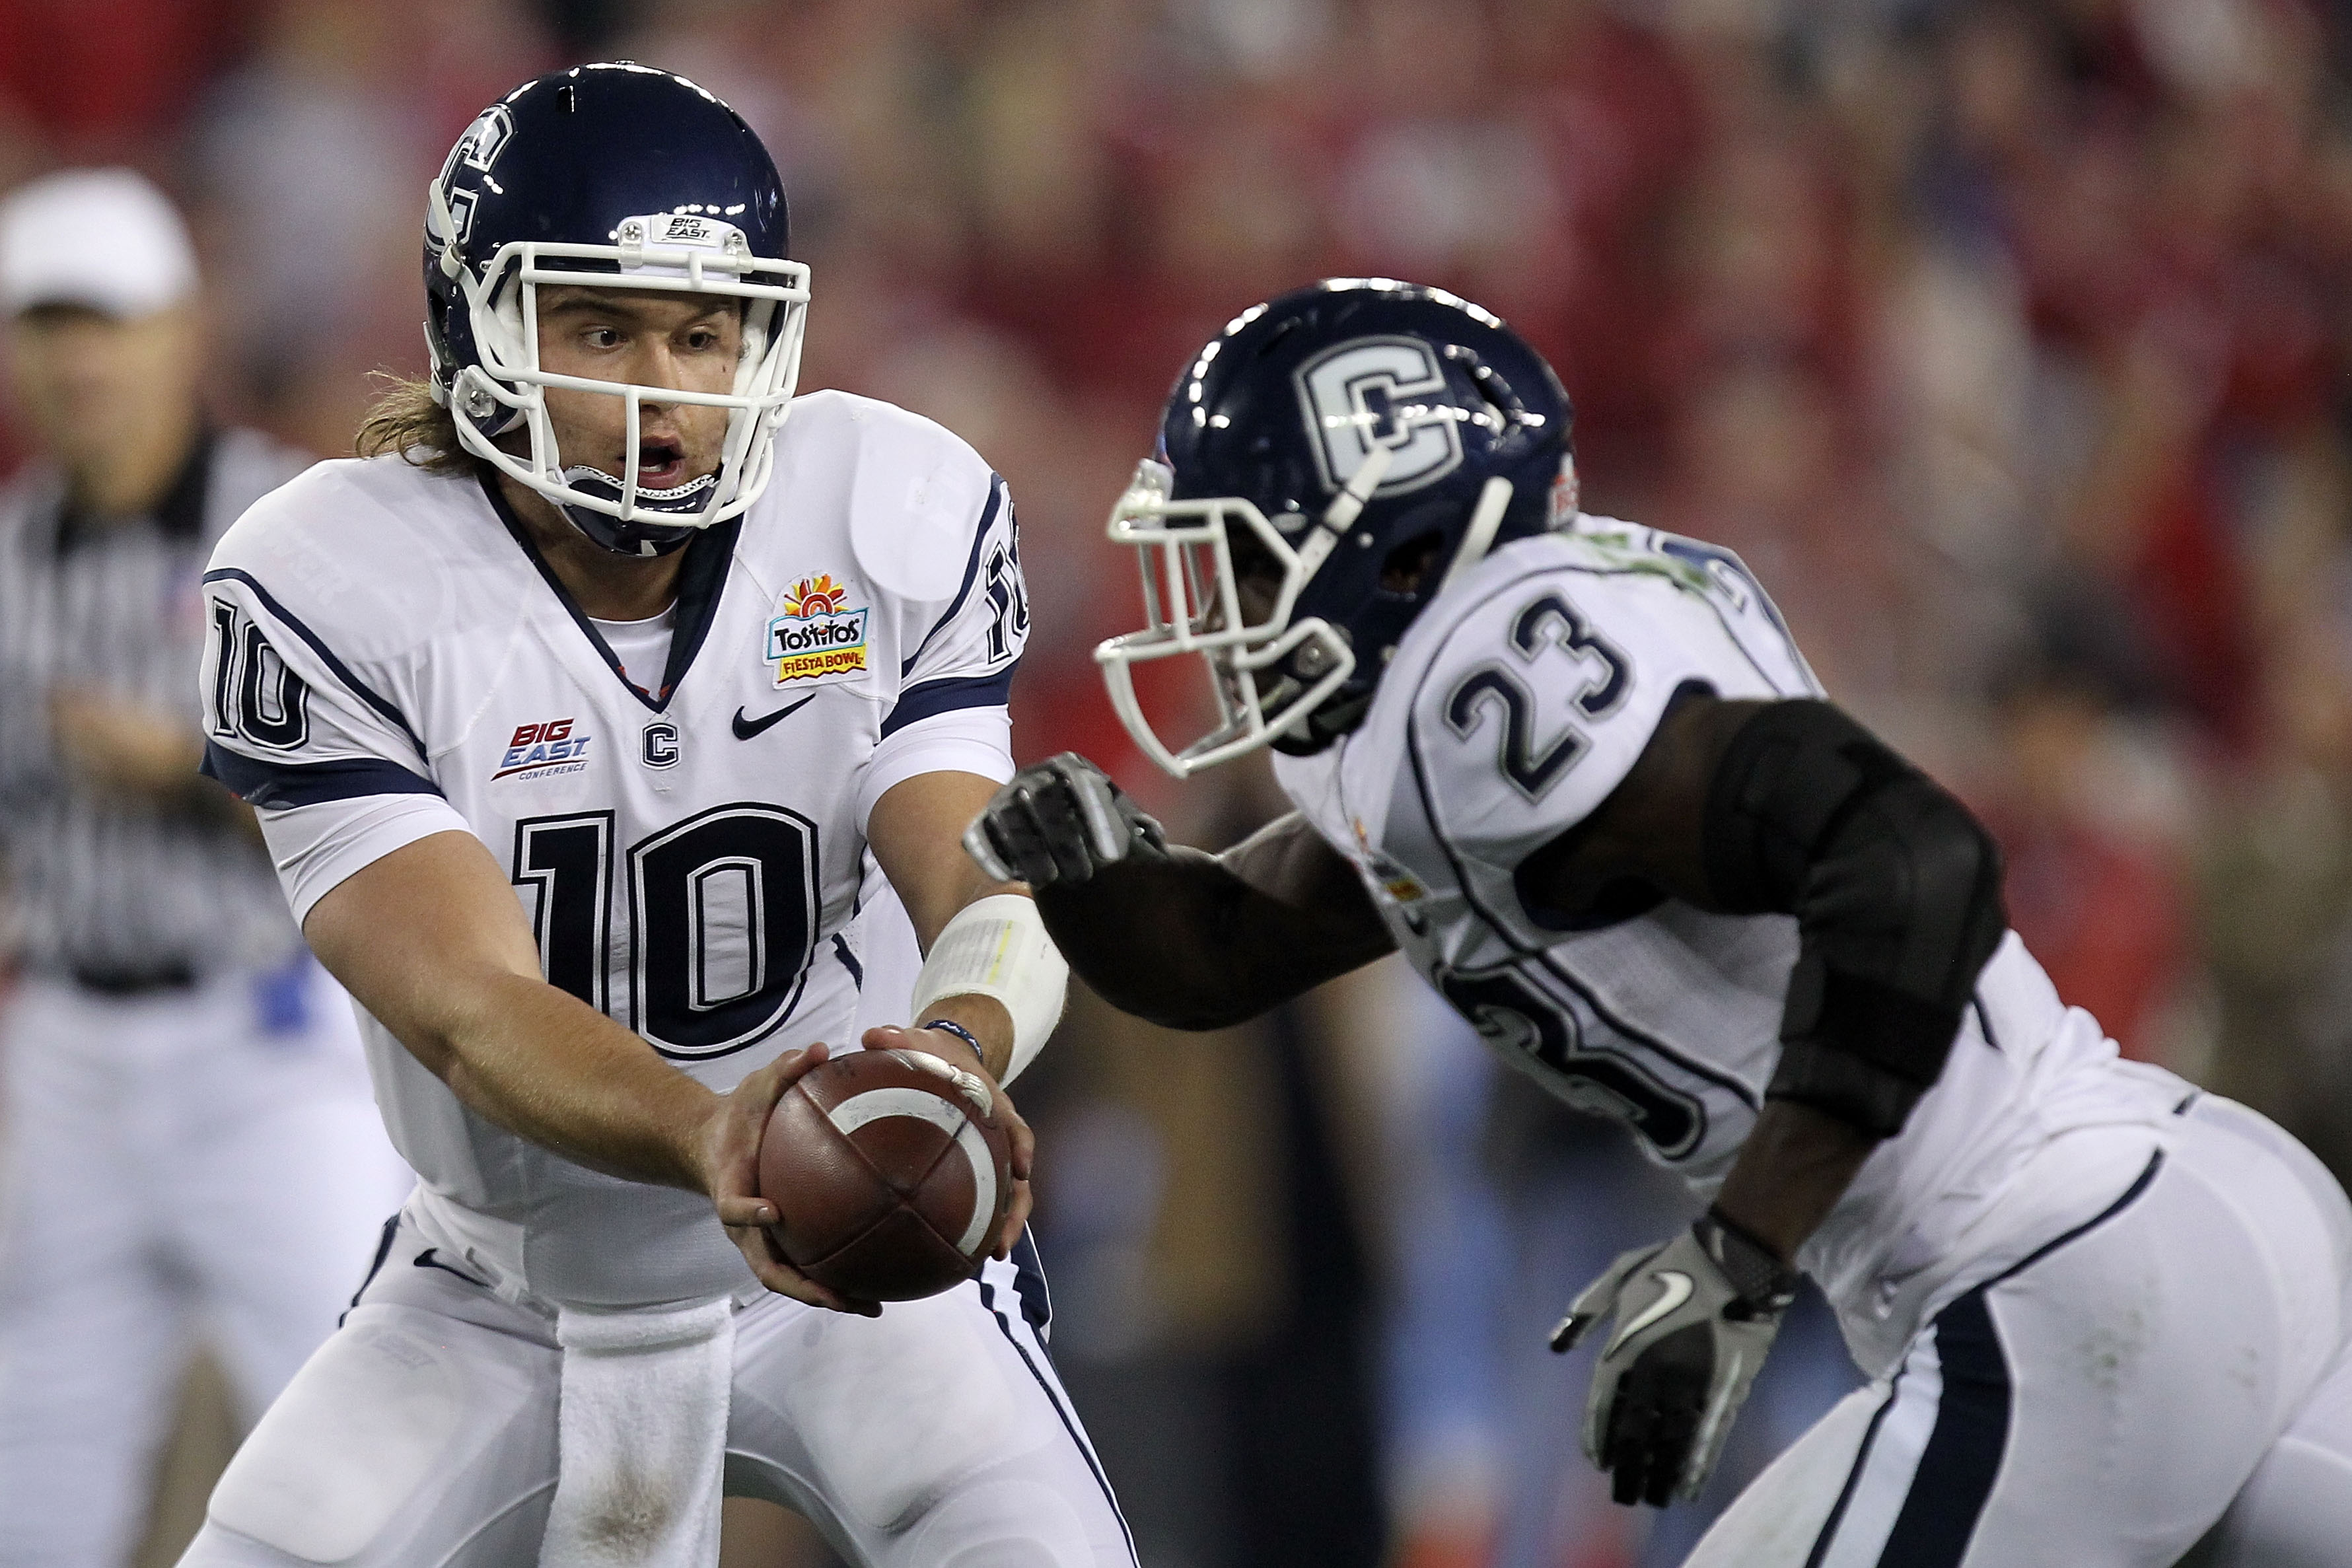 GLENDALE, AZ - JANUARY 01:  Zach Frazer #10 of the Connecticut Huskies  hands the ball off to Jordan Todman #23 against the Oklahoma Sooners during the Tostitos Fiesta Bowl at the Universtity of Phoenix Stadium on January 1, 2011 in Glendale, Arizona.  (P